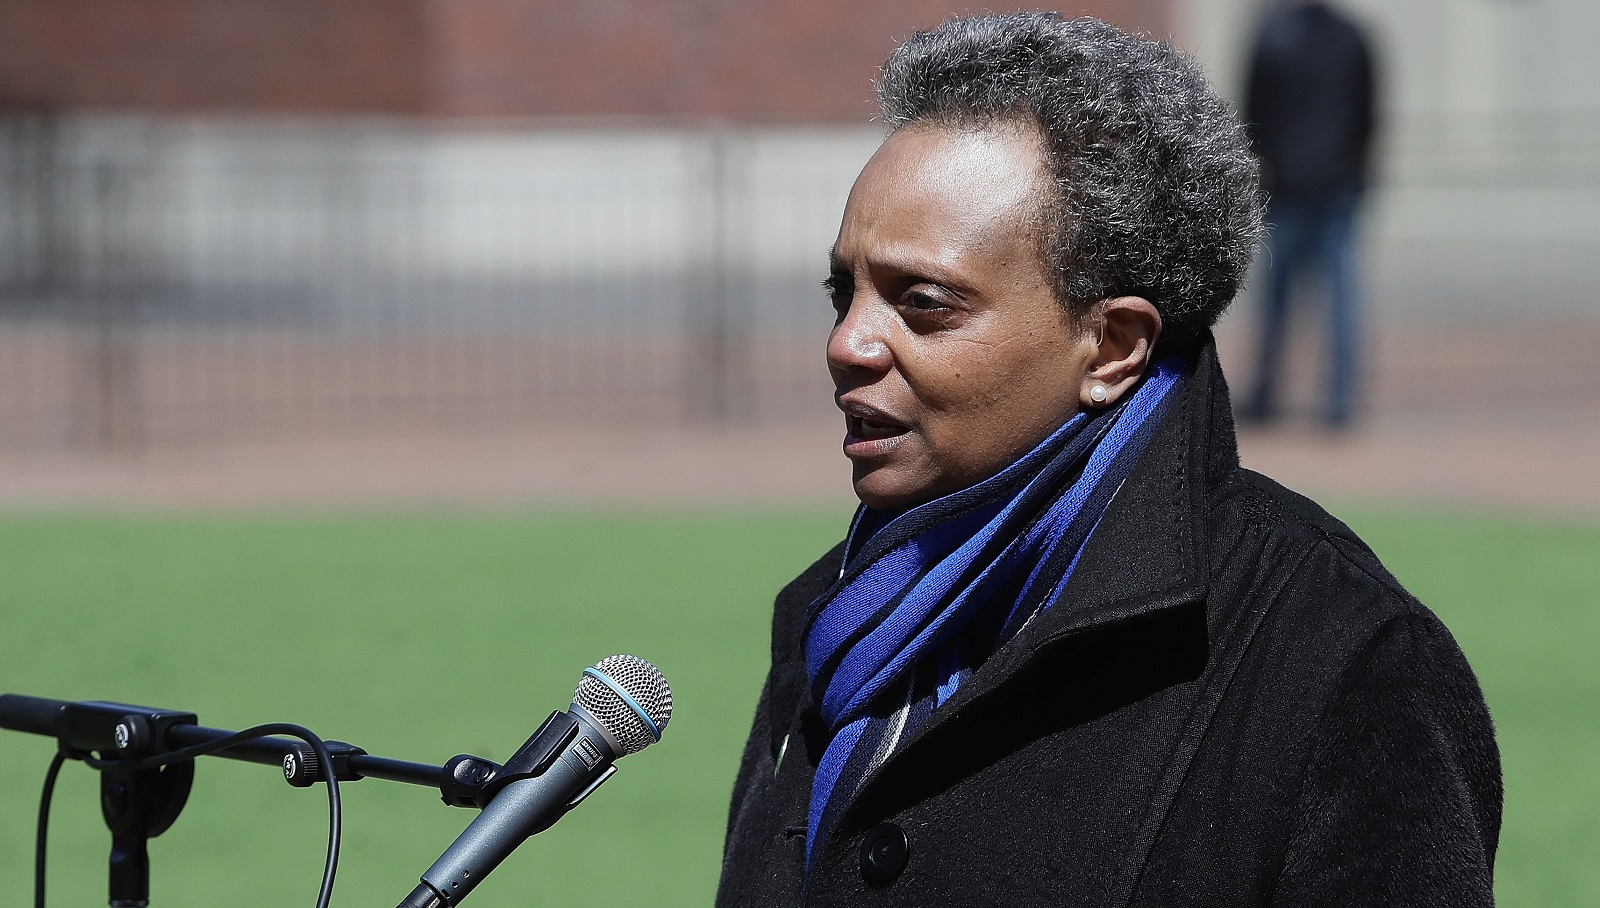 Chicago's Black lesbian mayor Lori Lightfoot vows to find and fire homophobic cop who shouted 'f****t' at protesters